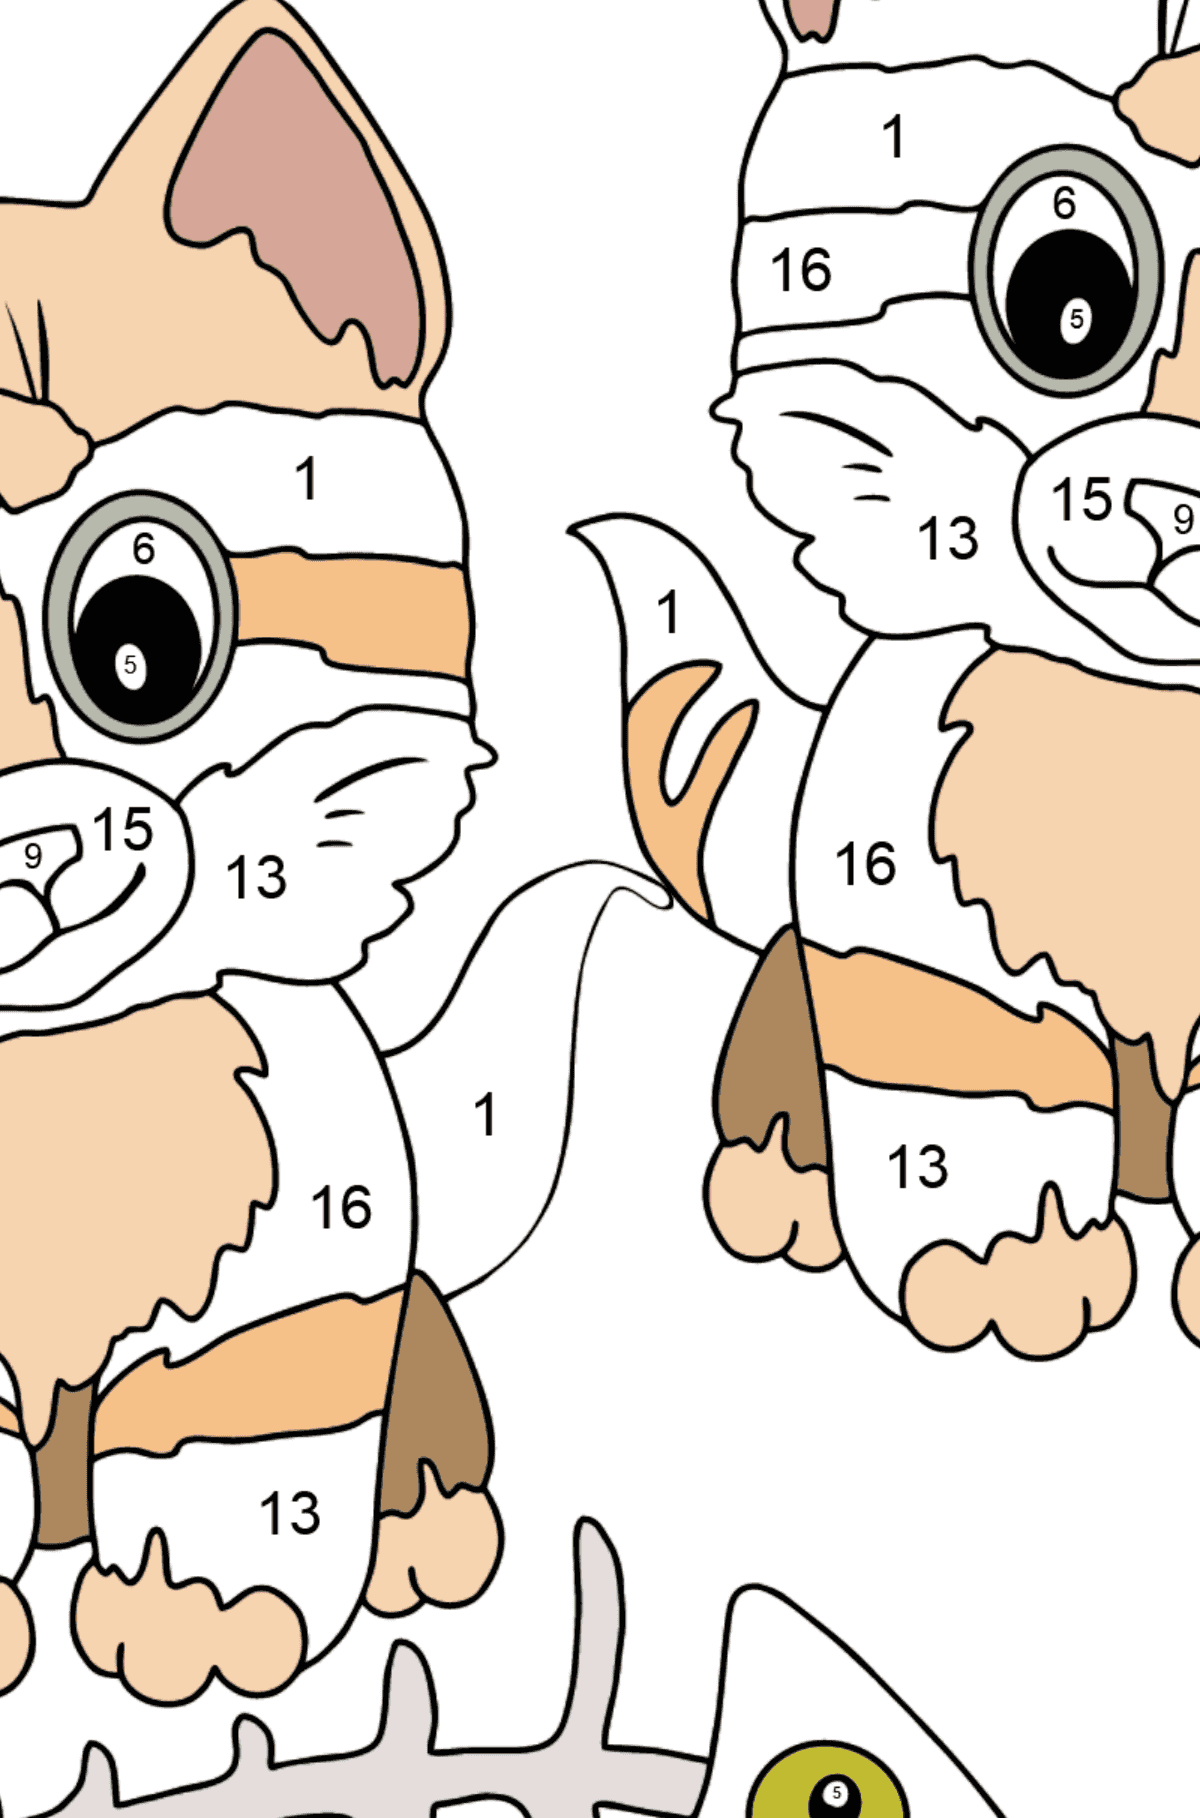 Coloring Page - Kittens are Looking at a Fish Bone - Coloring by Numbers for Kids